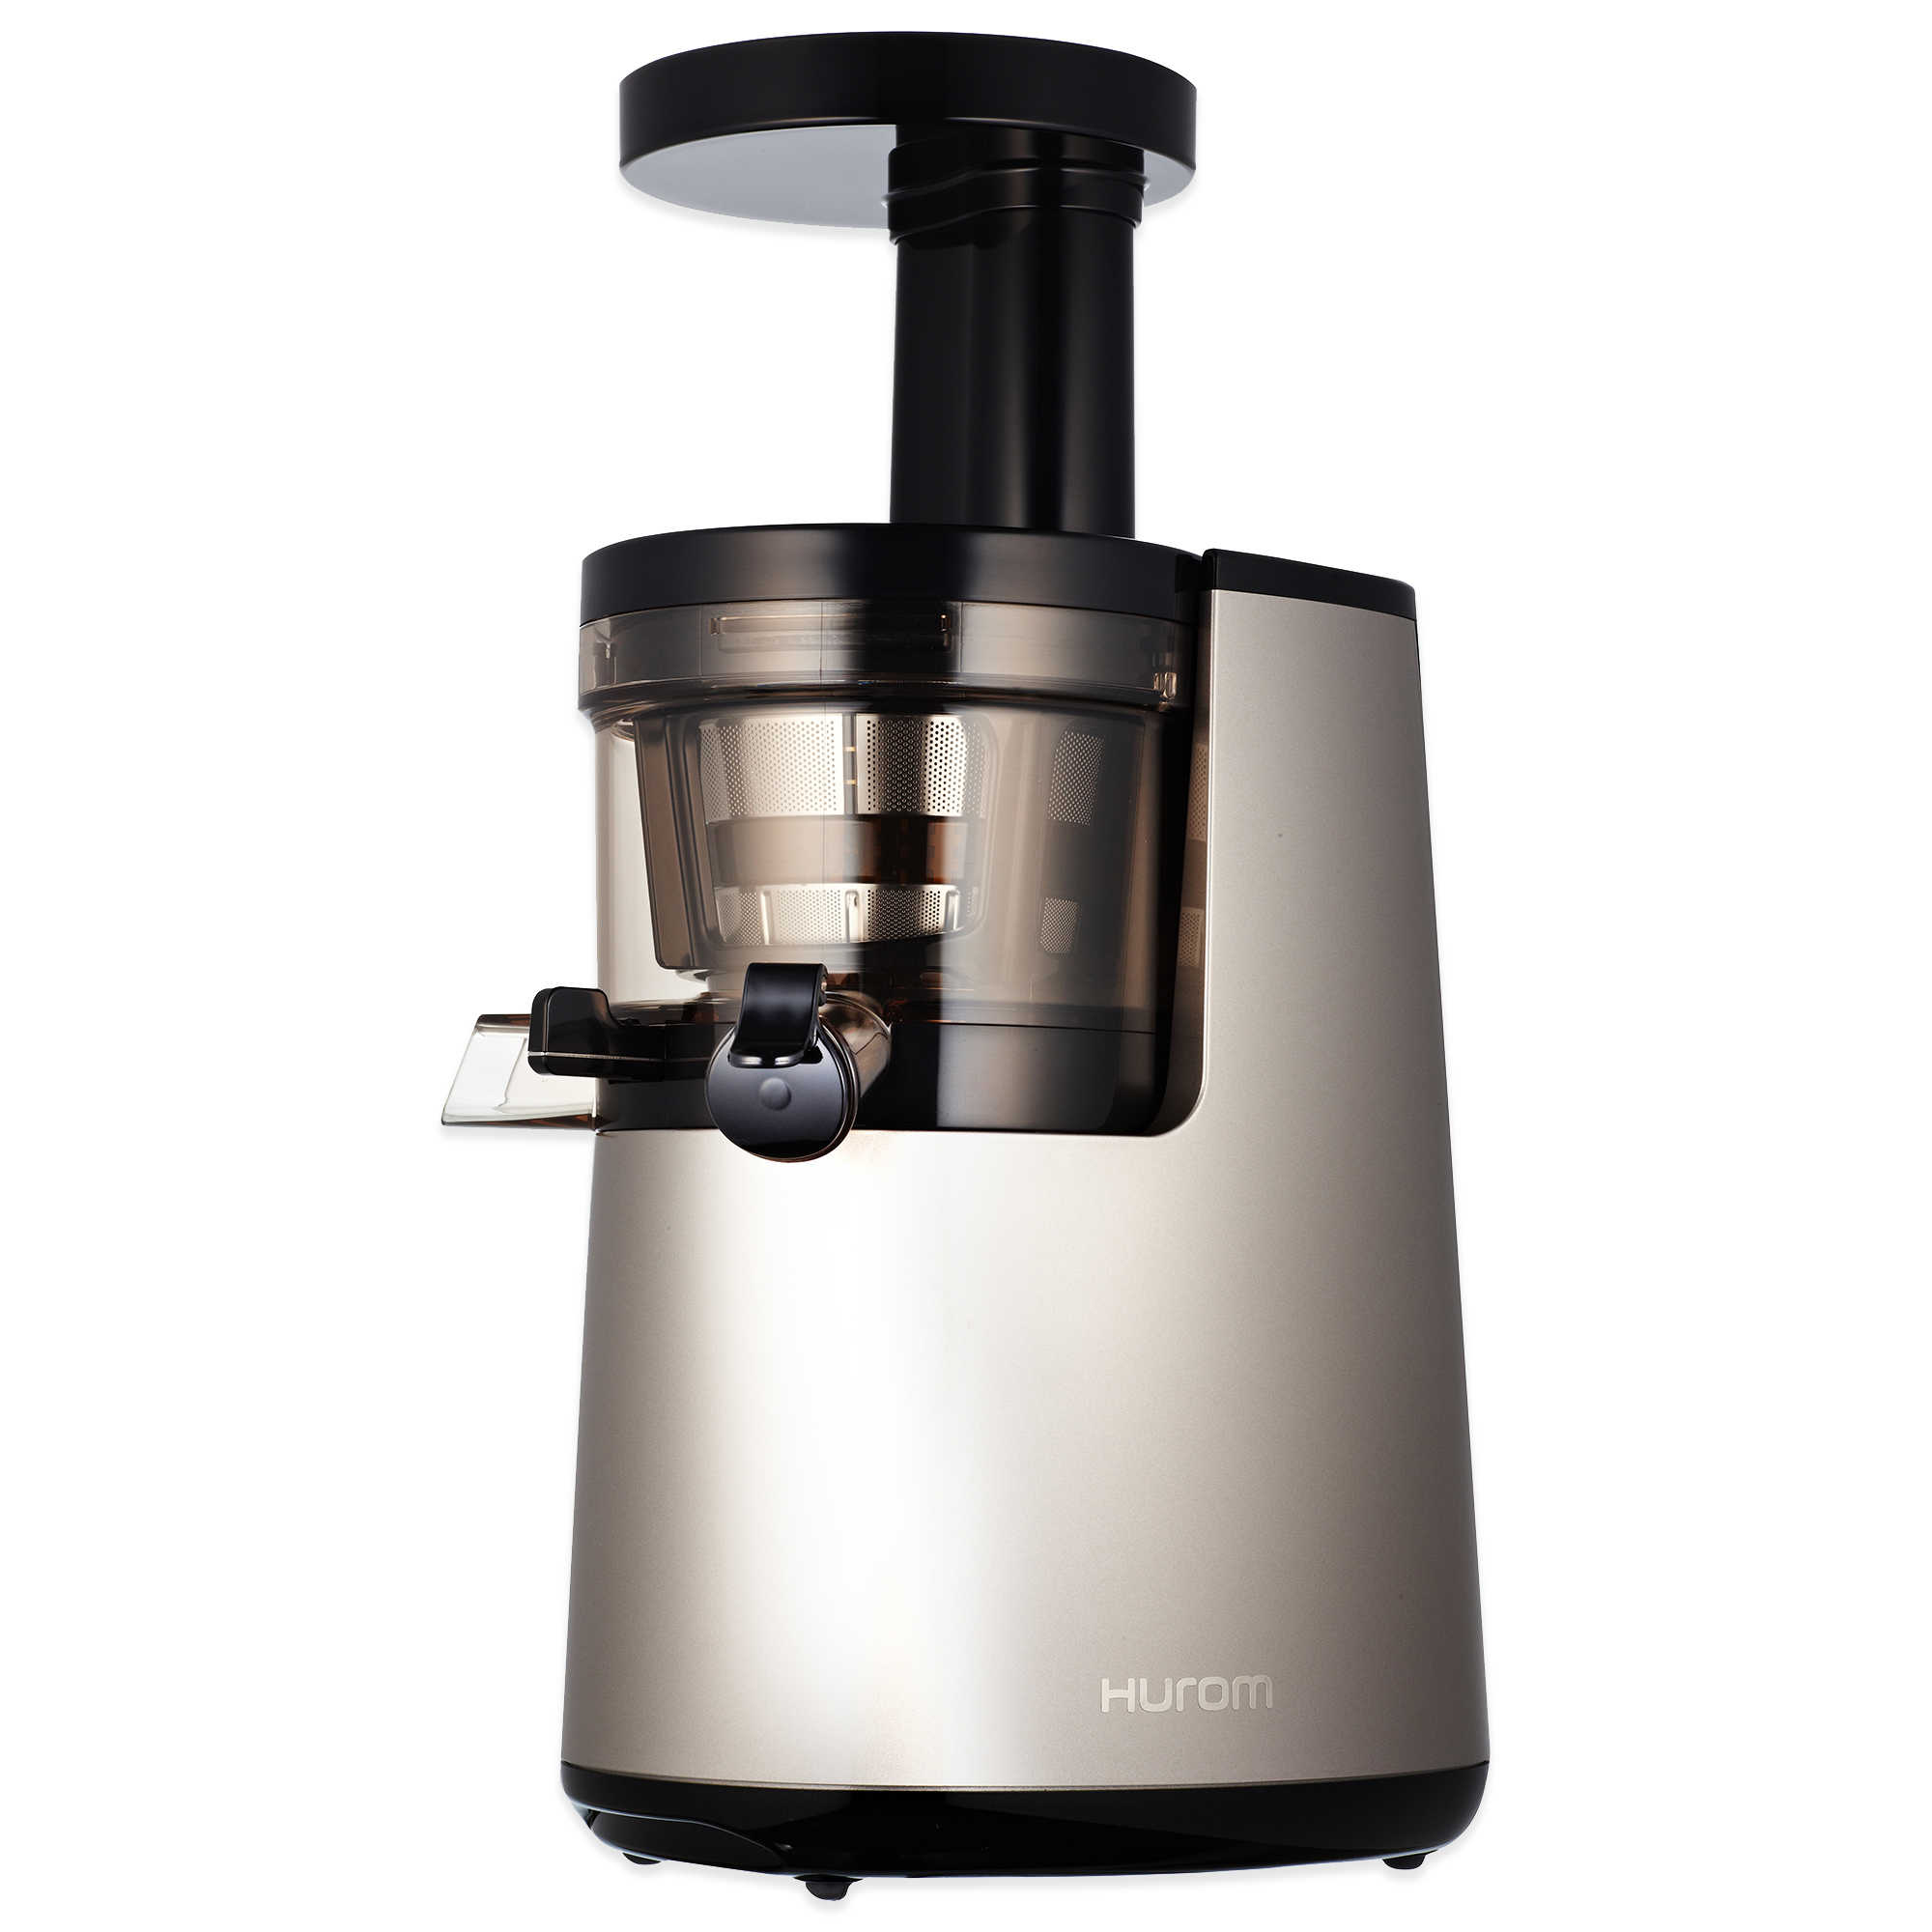 Slow Juicer Definition : Hurom HH Elite Slow Juicer - www.BedBathandBeyond.com